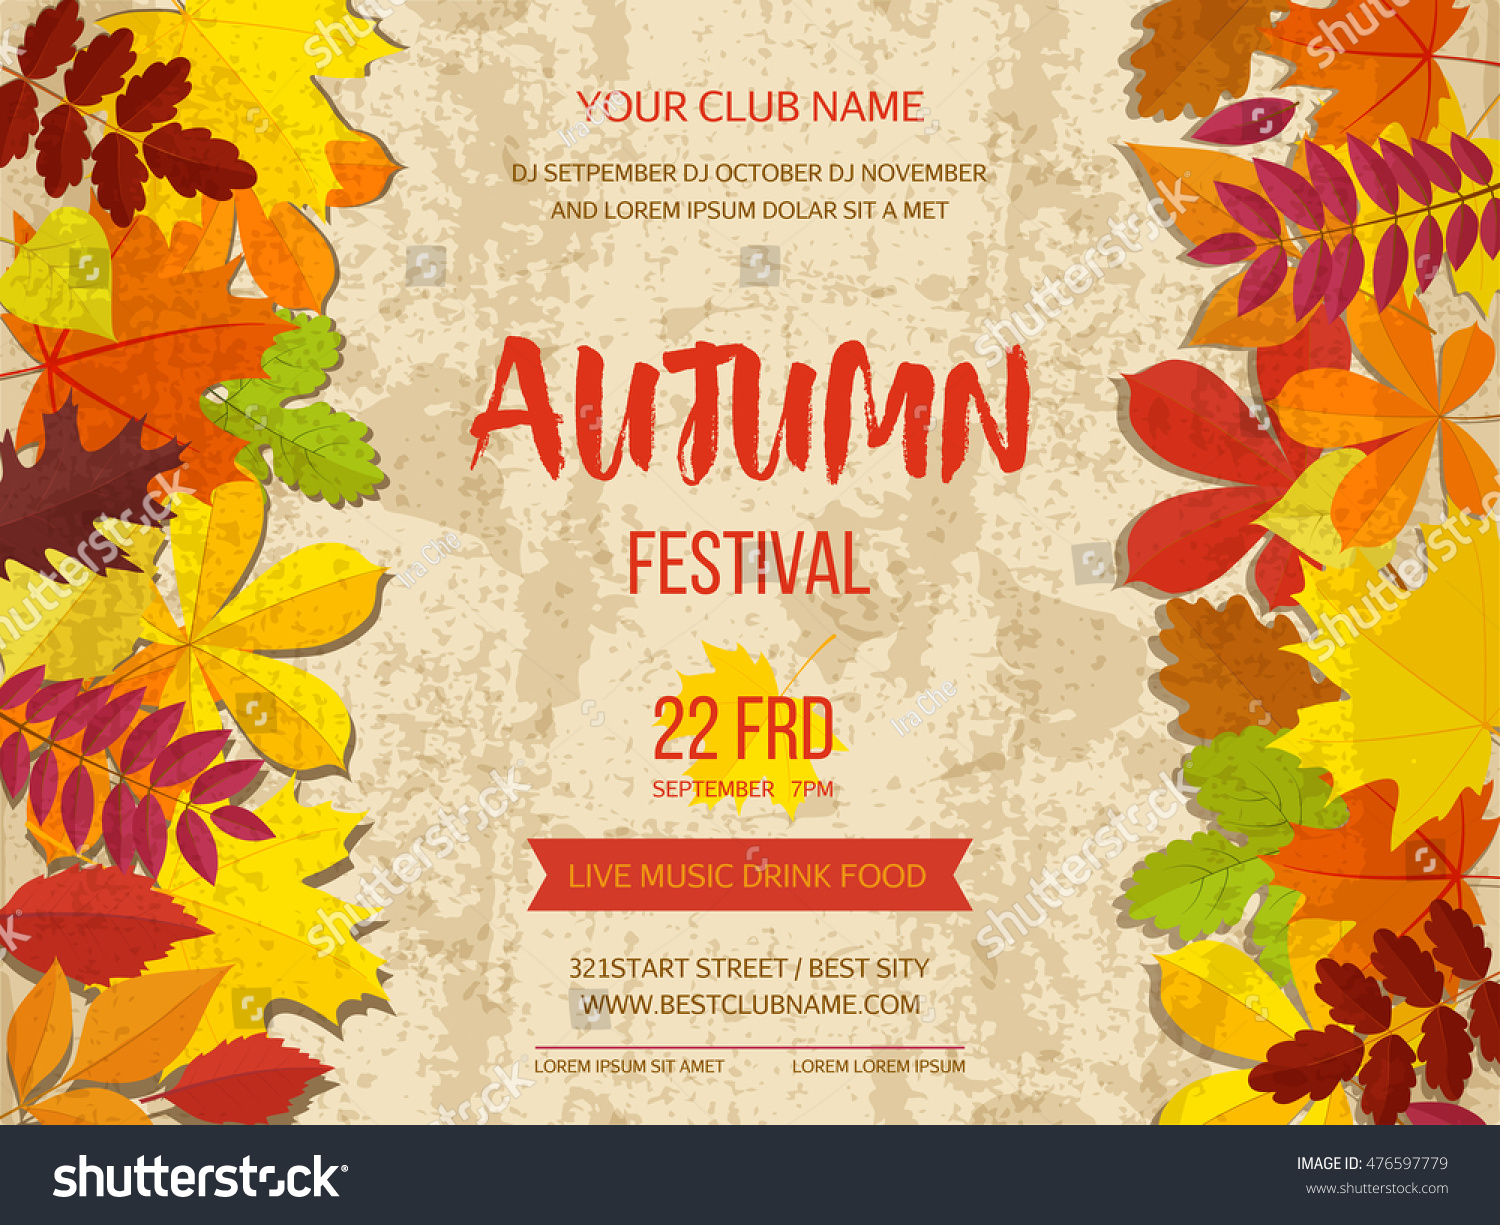 hight resolution of free fall festival flyer templates polarview net thanksgiving autumn background border